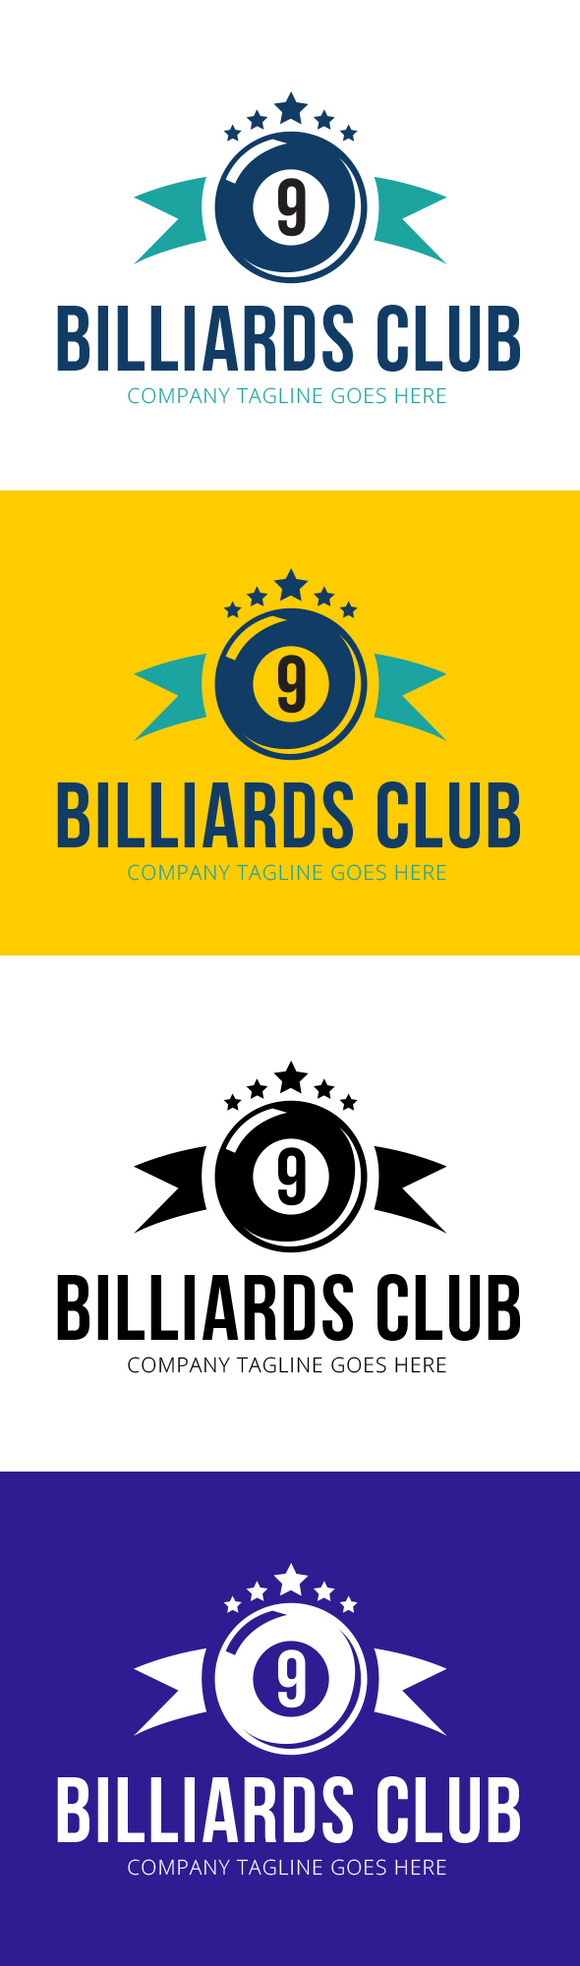 Billiards Club Logo Template